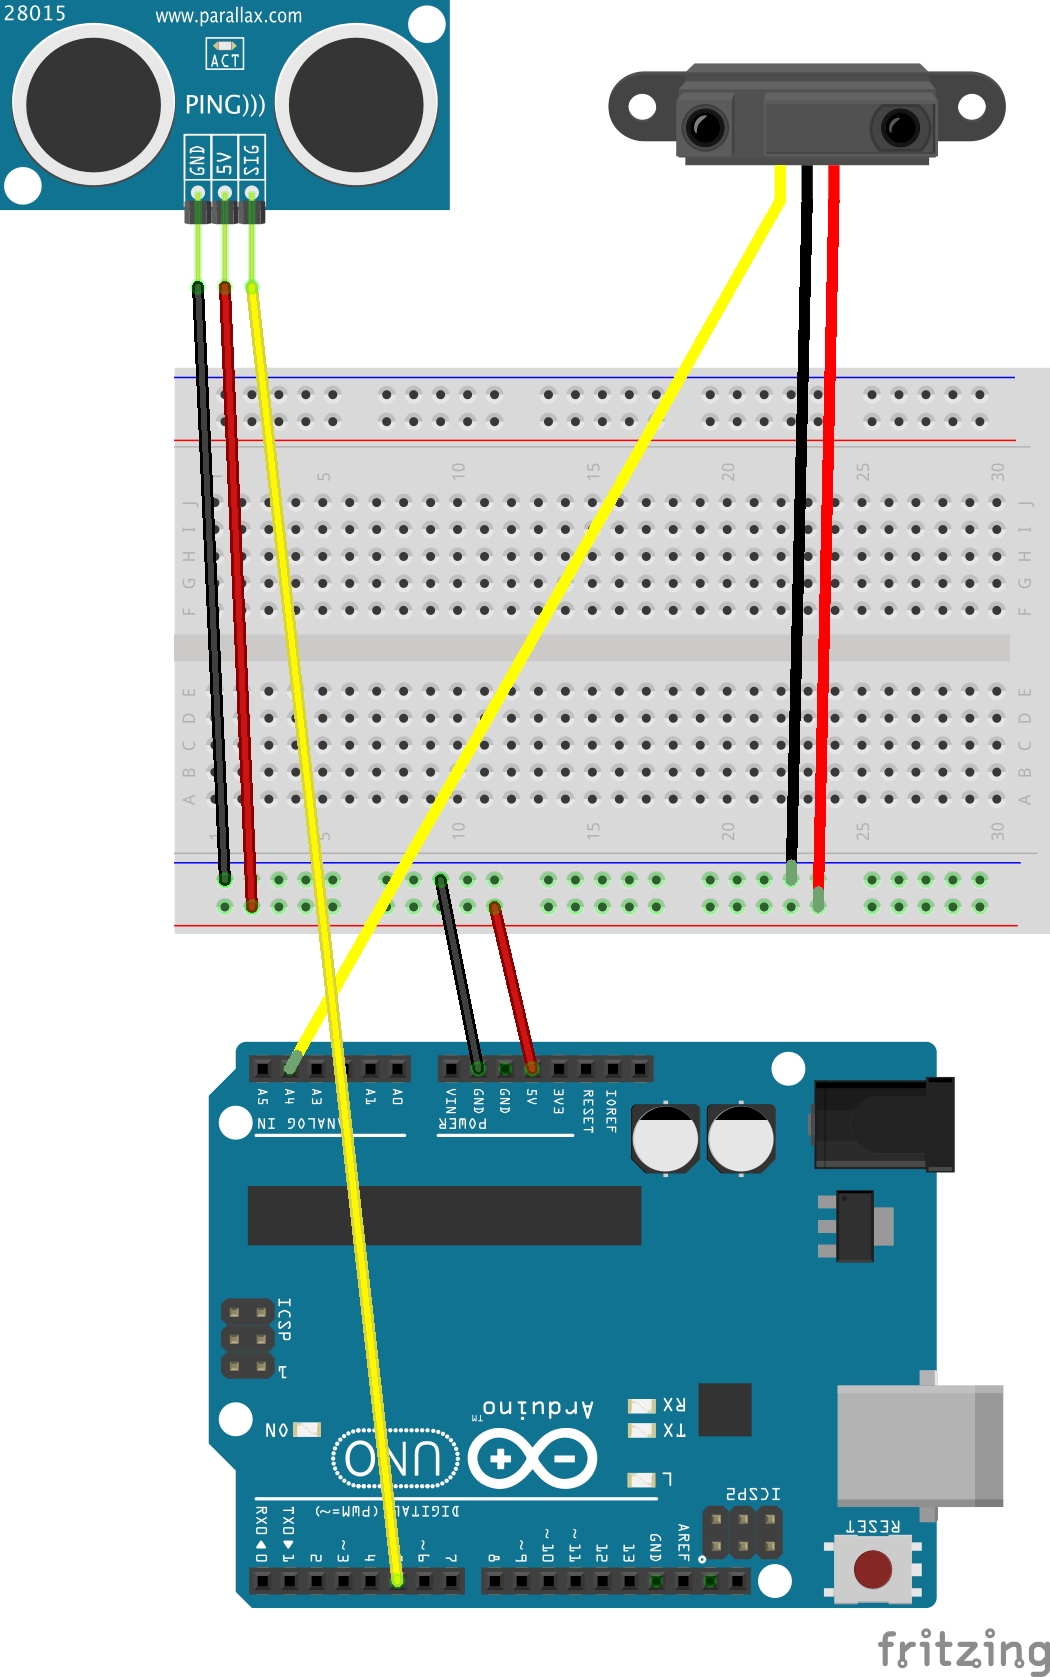 How to Use a L293D Chip With Arduino and a Motor